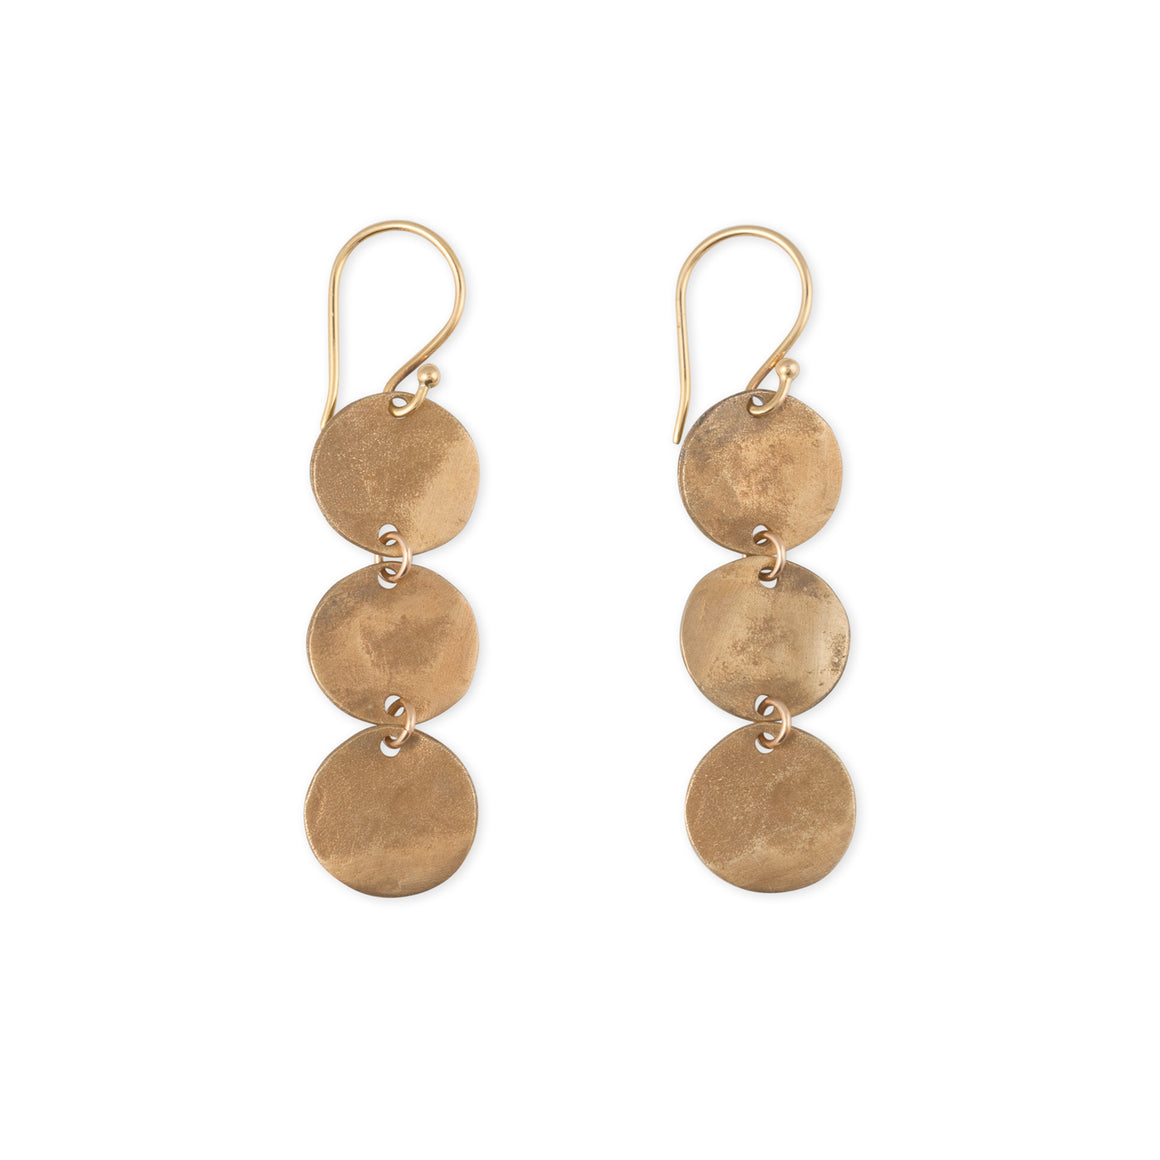 Goddess Earrings handcrafted 3 hammered discs by Kristen Mara